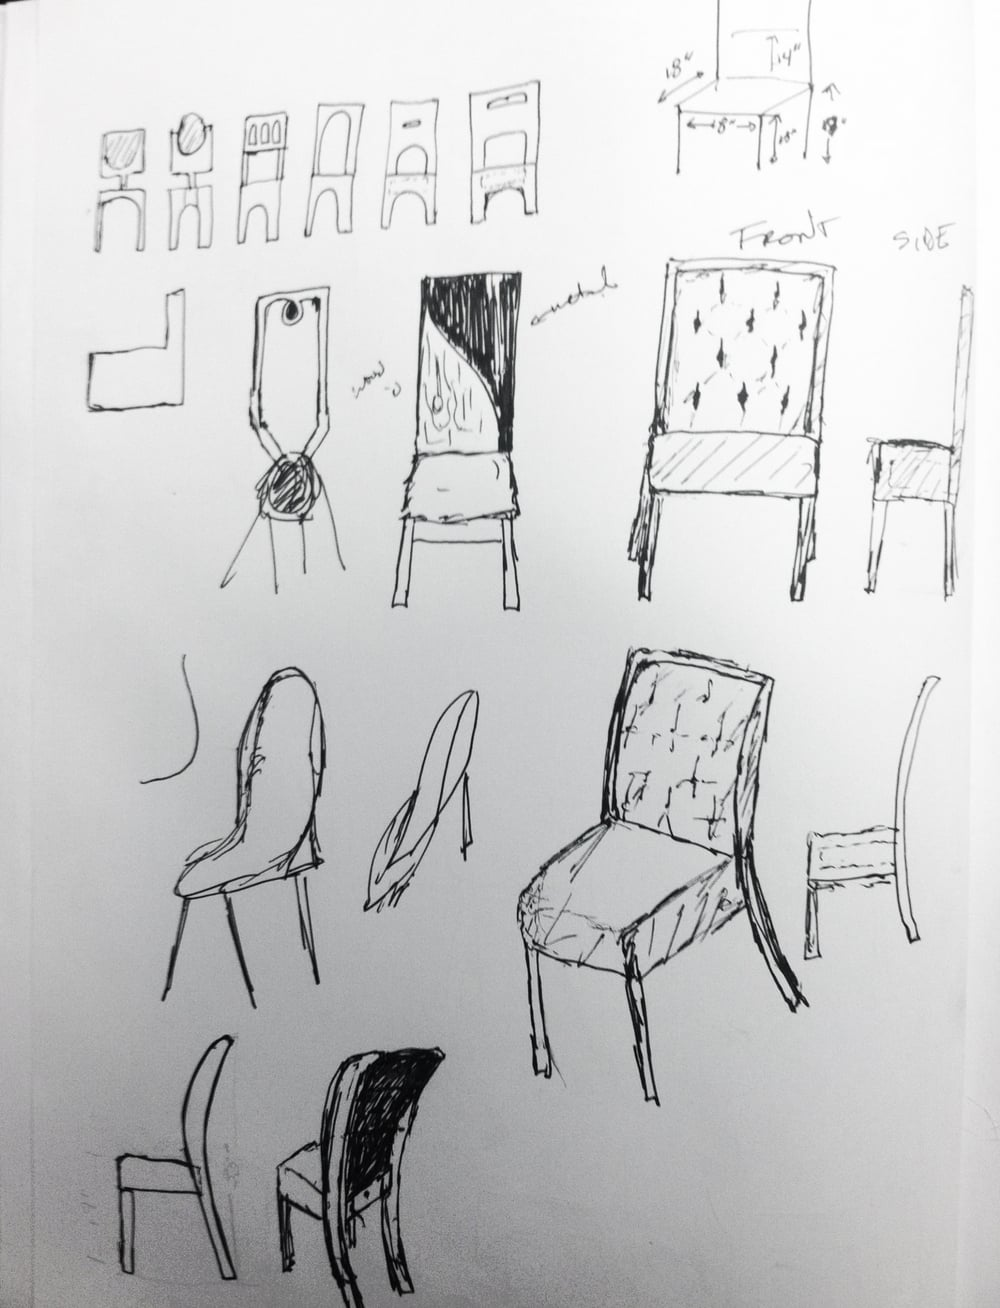 Thumbnail sketches and quick idea iterations